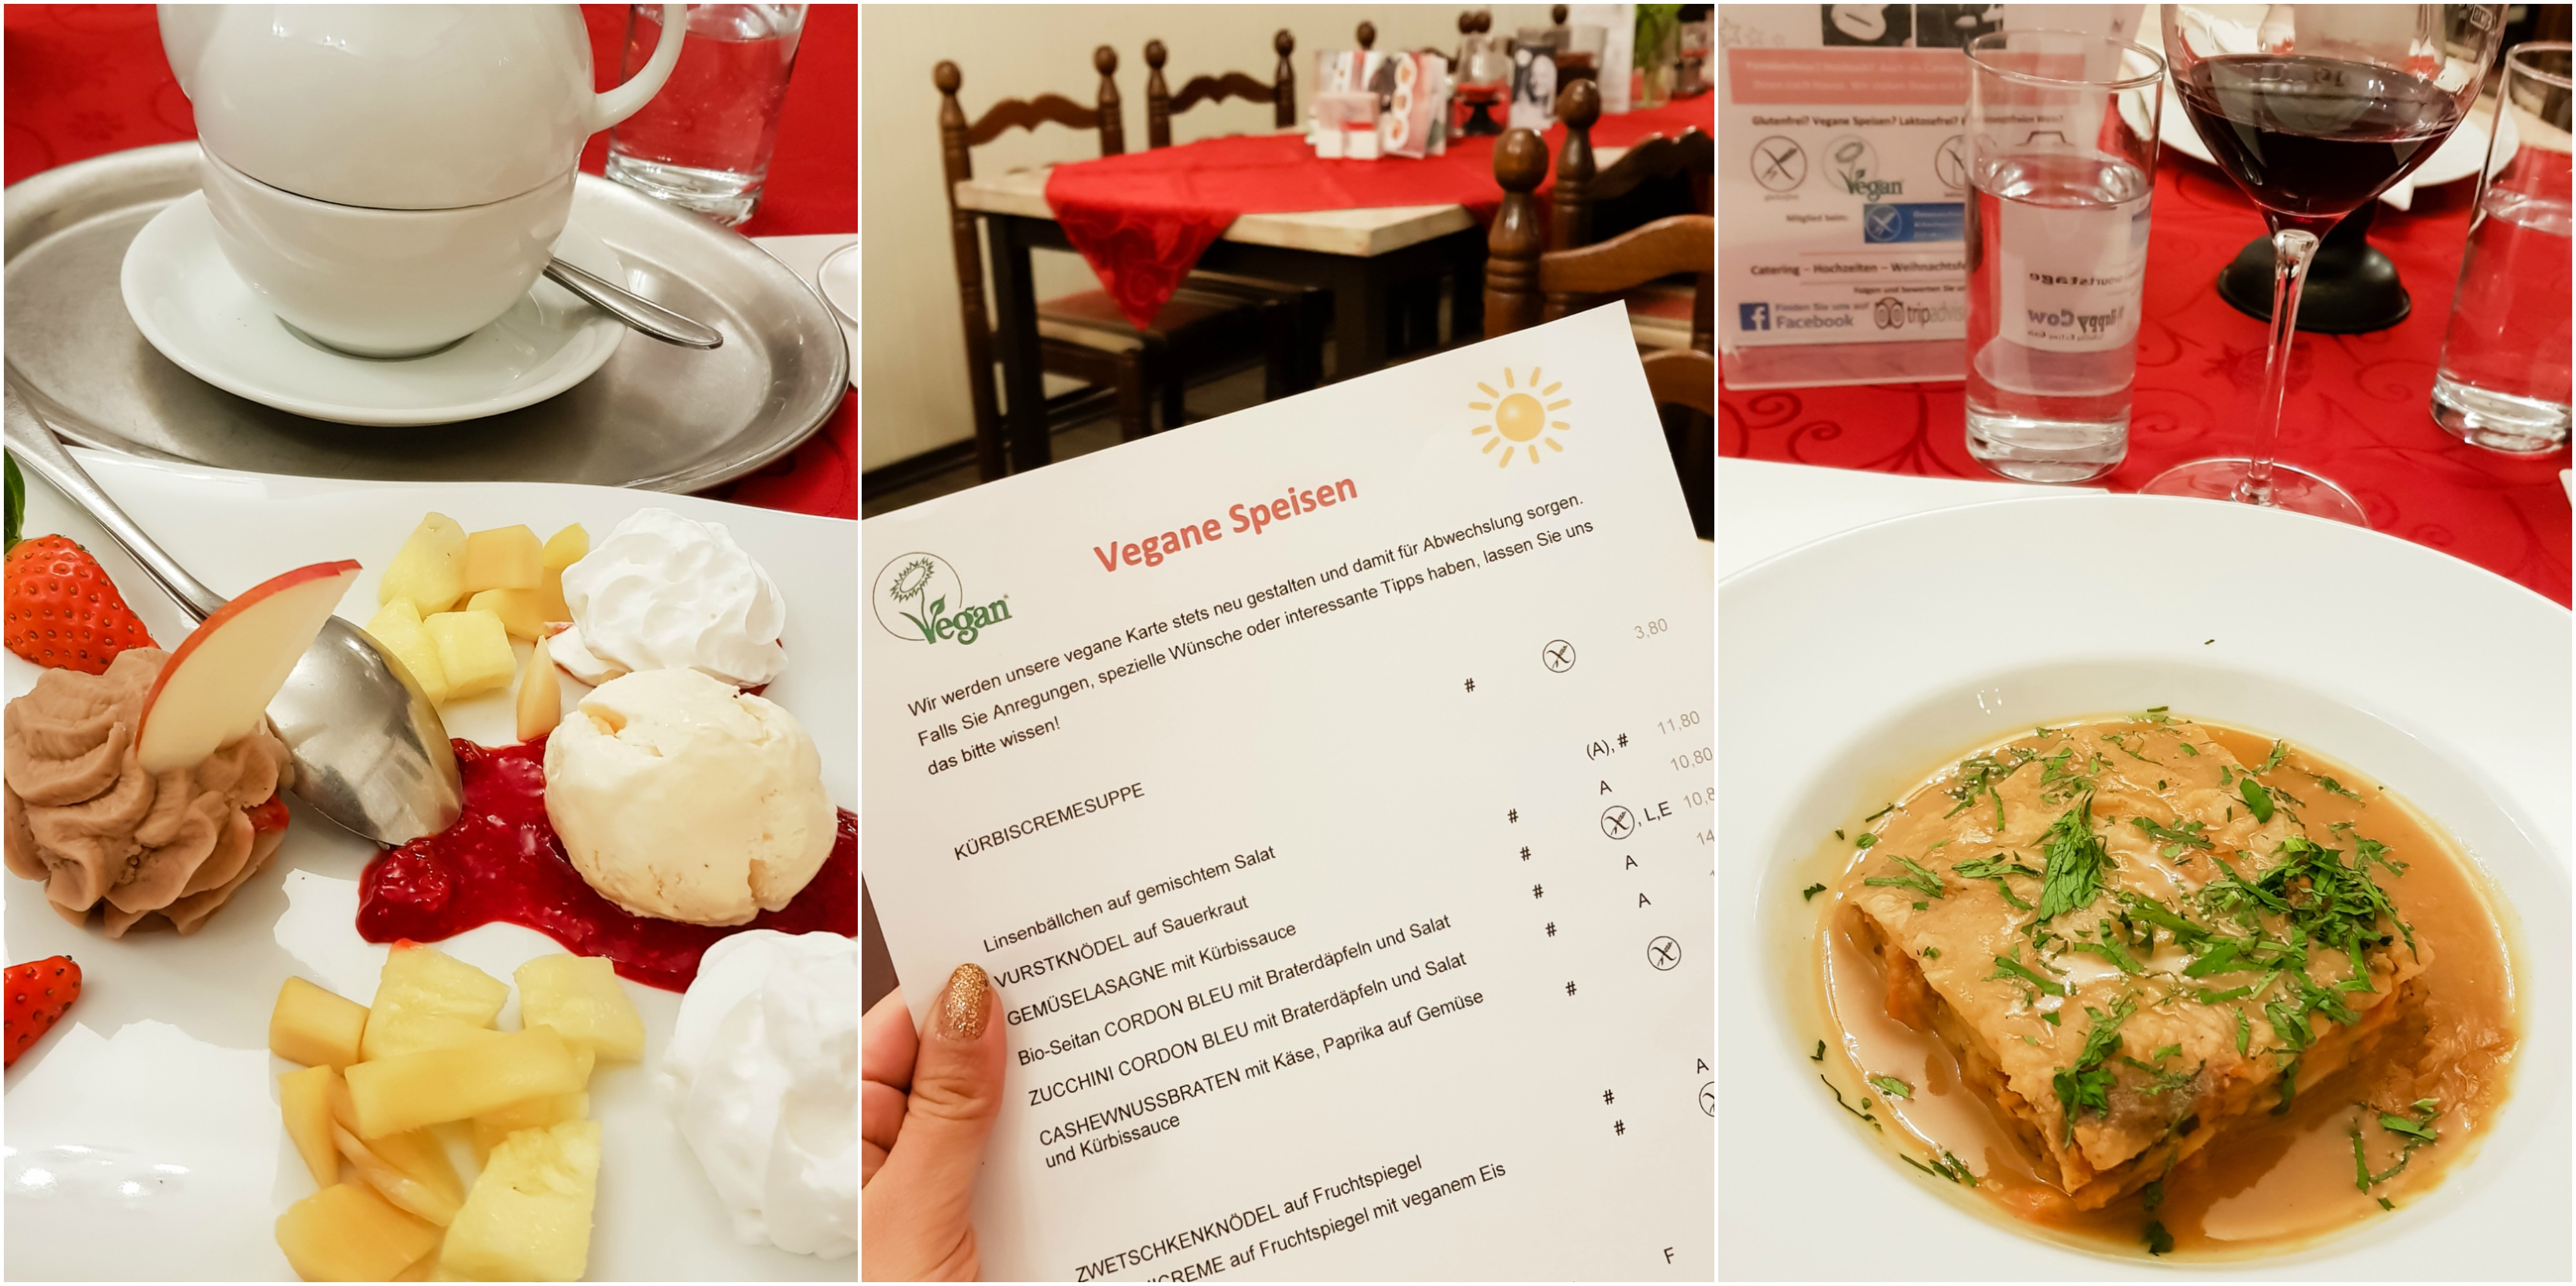 Gasthaus-am-Presdigtstuhl-wien-vegan-friendly-restaurant